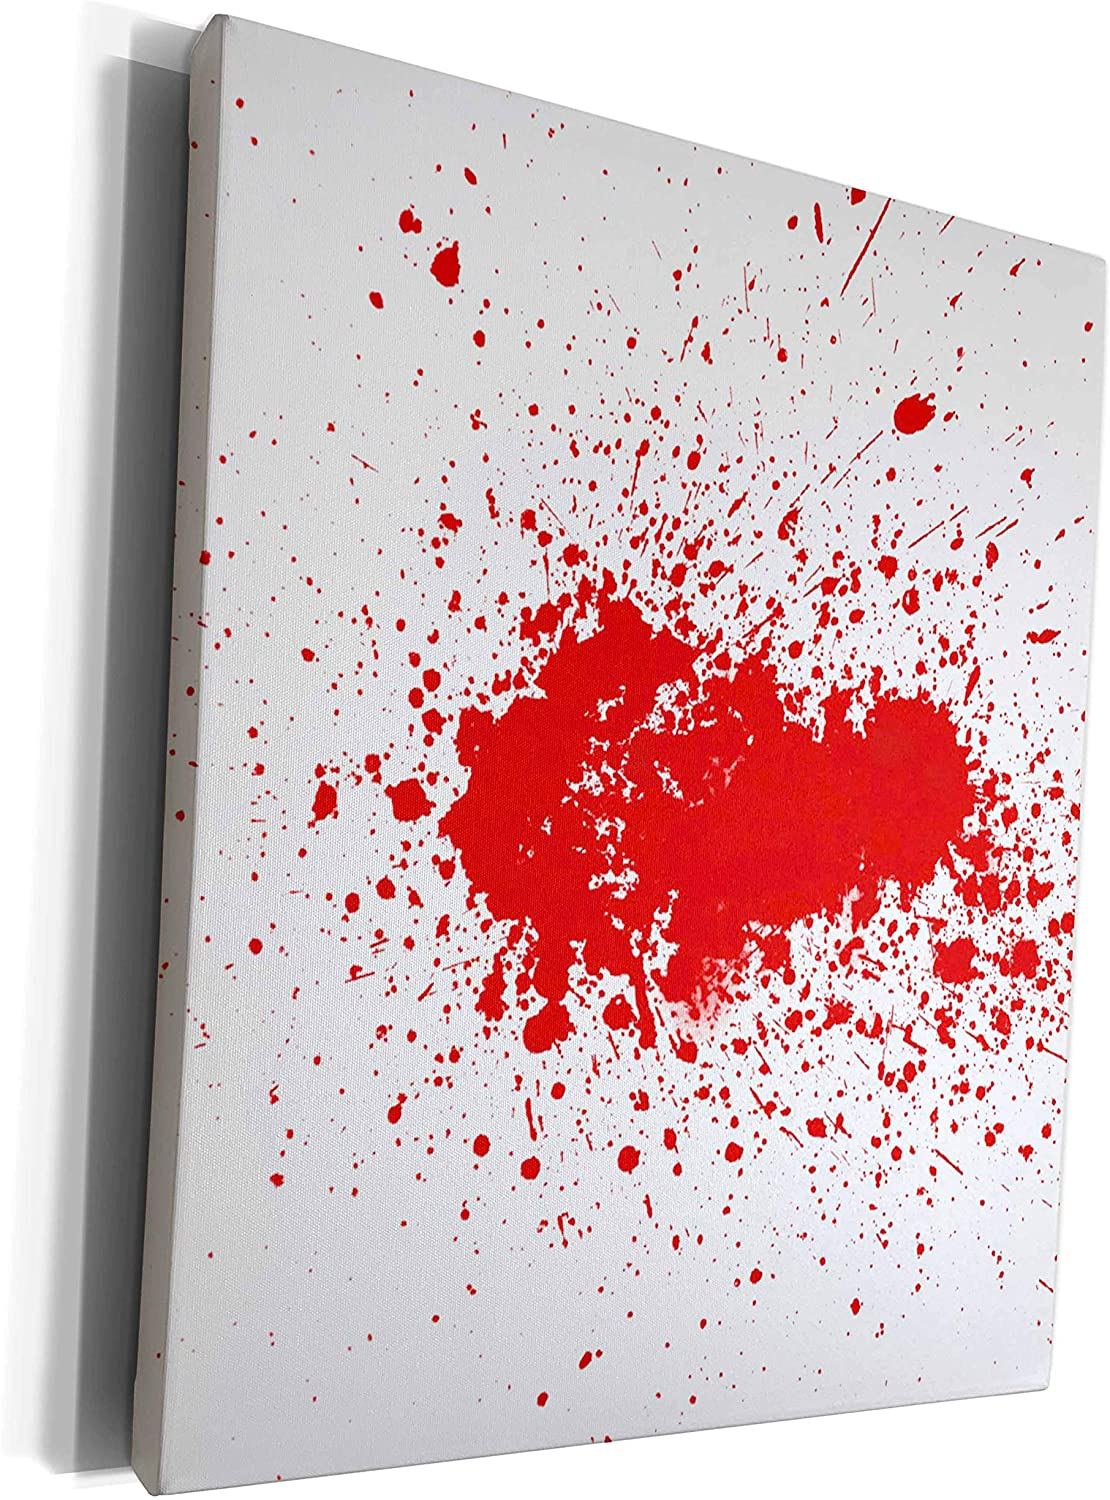 3dRose Xander movie quotes - blood splattered red blood on white background - Museum Grade Canvas Wrap (cw_201871_1)